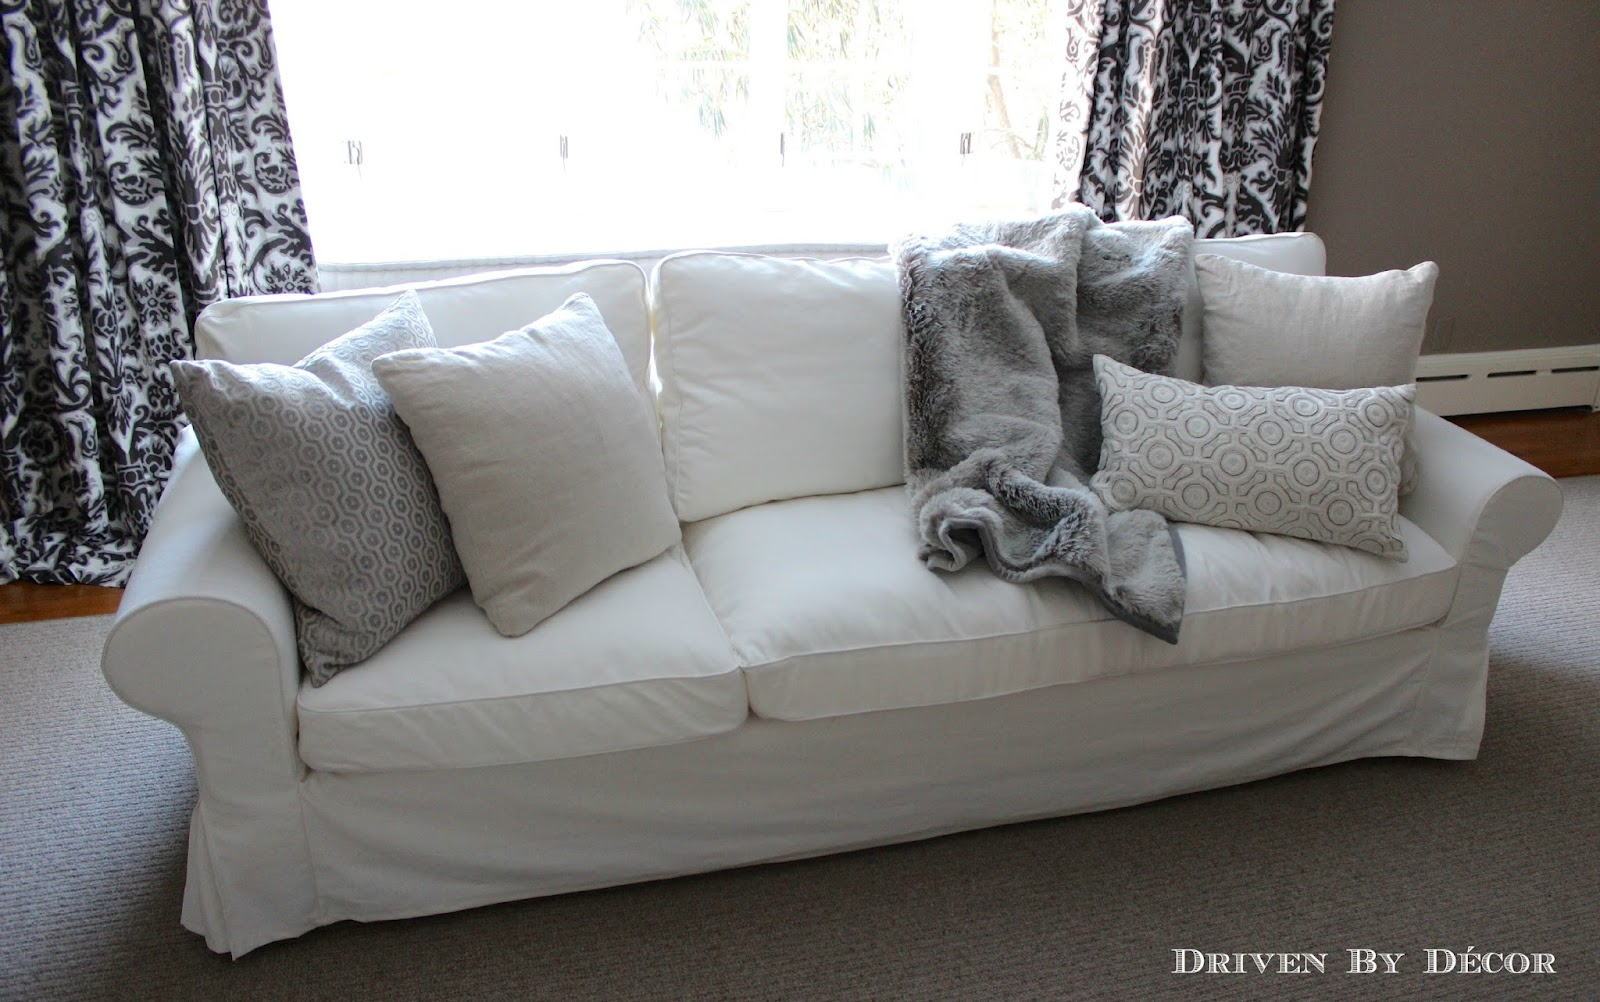 How We Supersized Our IKEA EKTORP Sofa  Driven by Decor